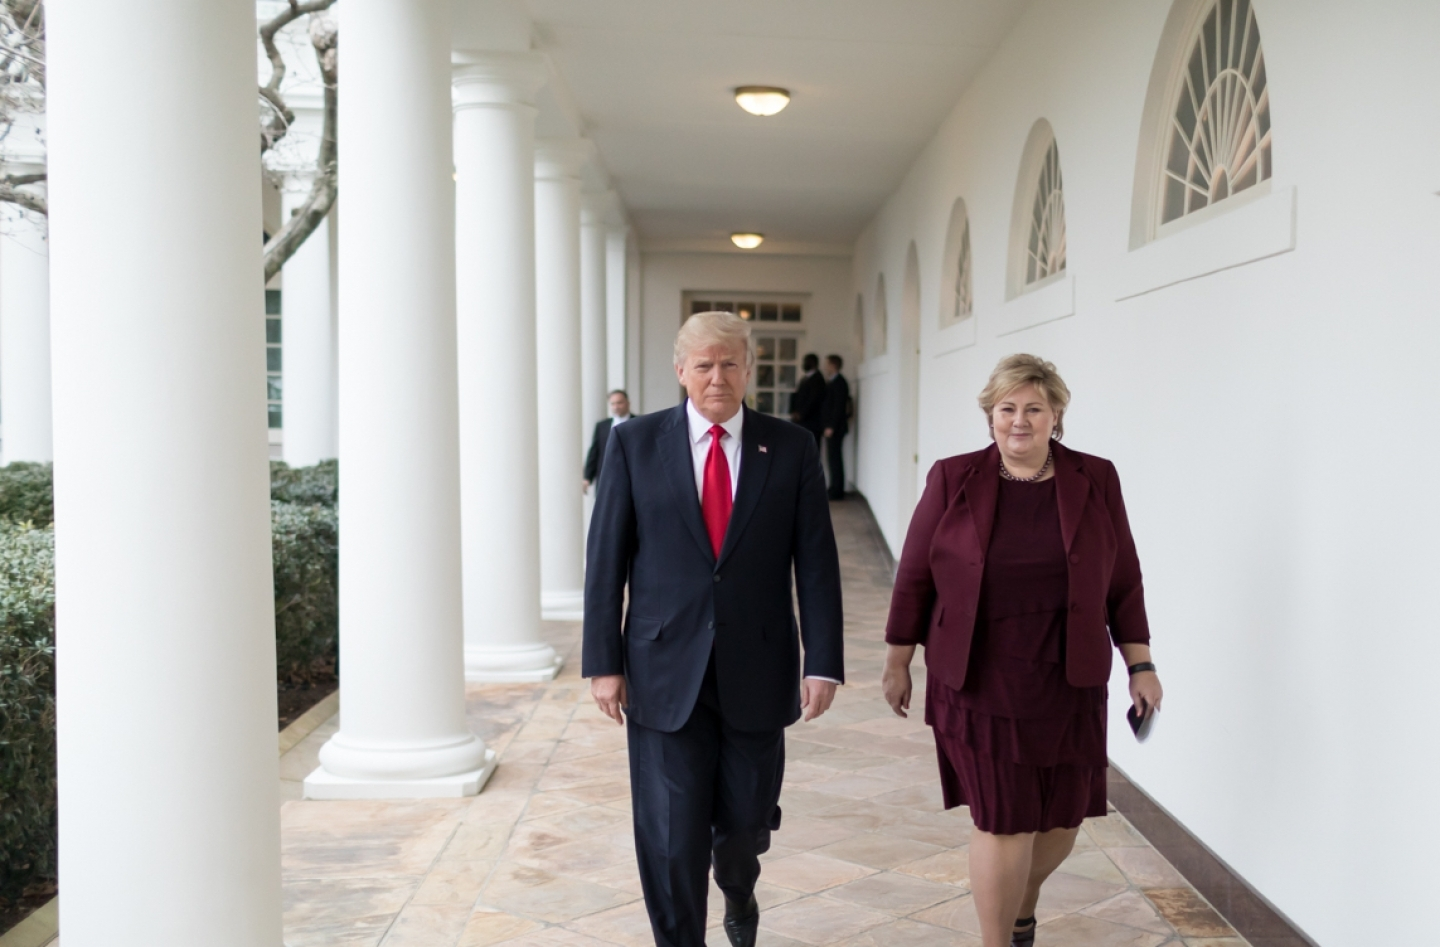 US President Donald Trump meets with Norwegian Prime Minister Erna Solberg on January 10, 2018 (White House Photo/D. Myles Cullen)